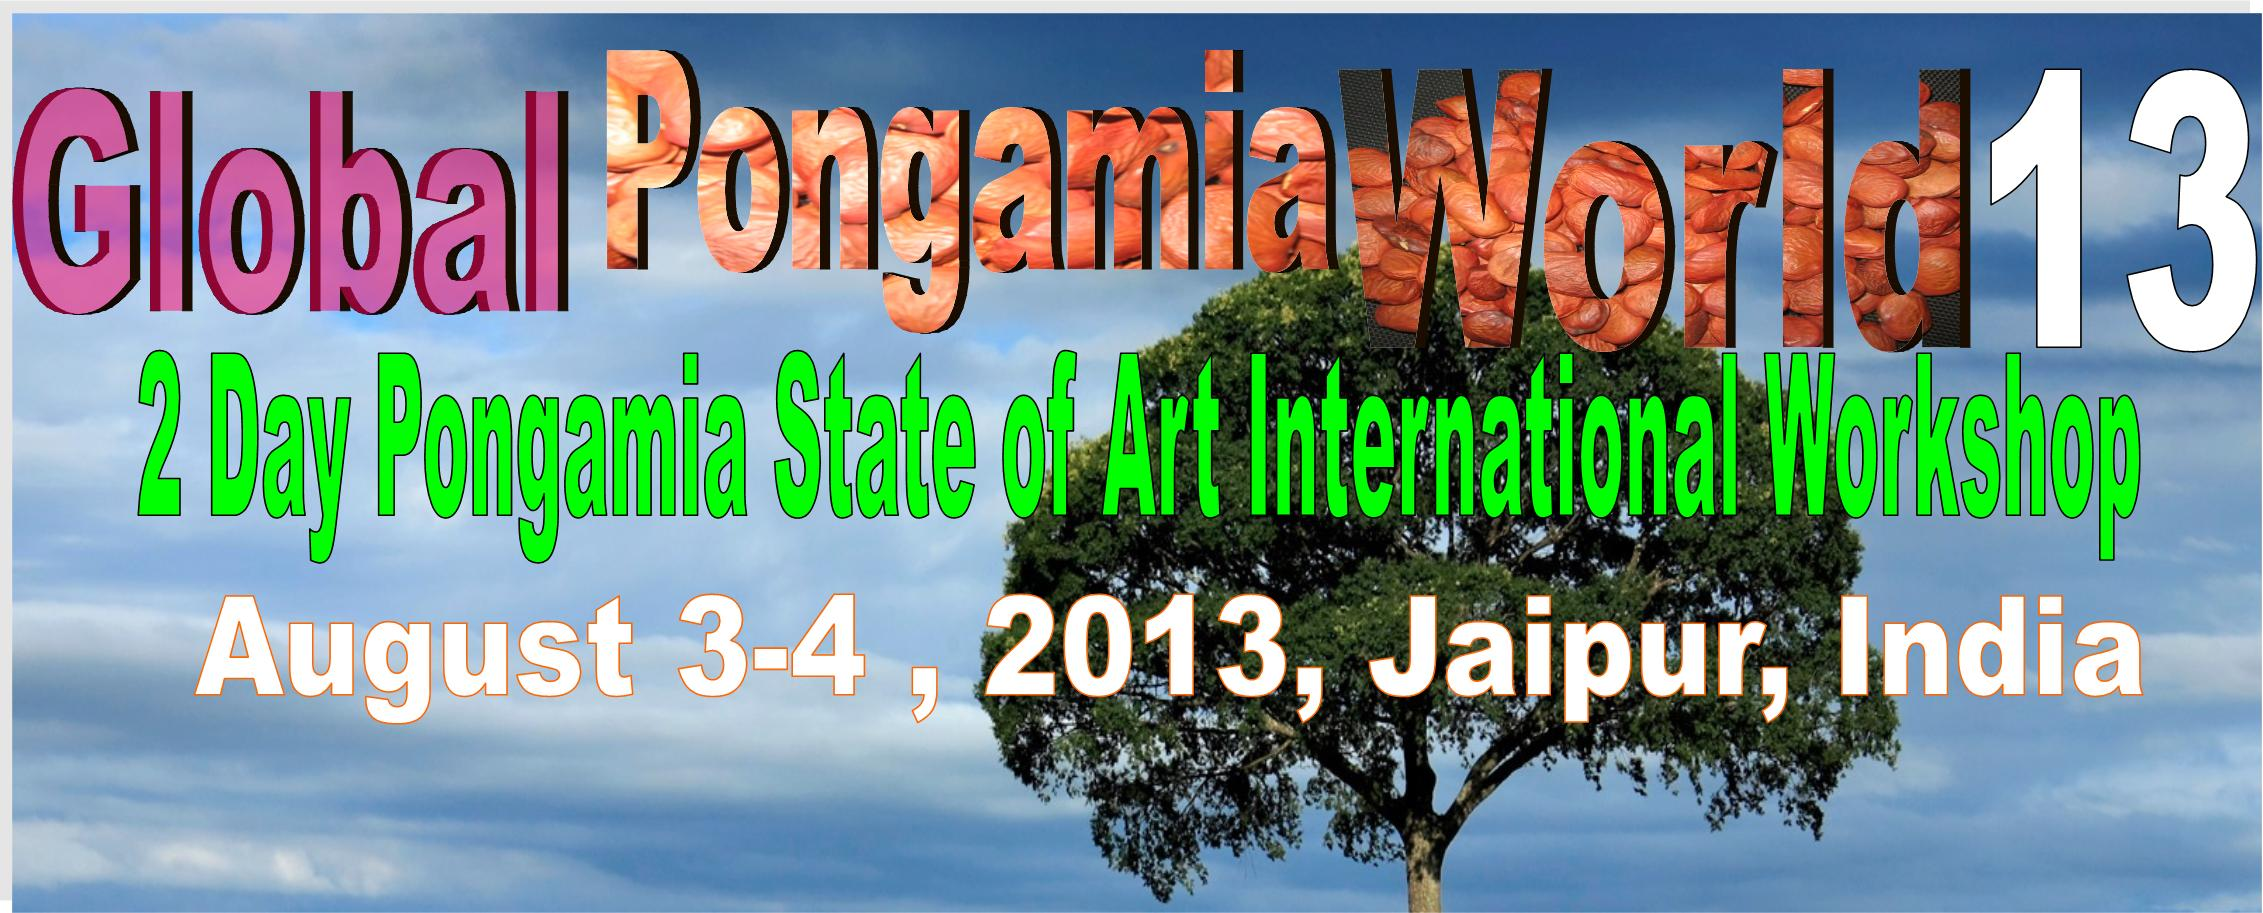 global pongamia world 2013